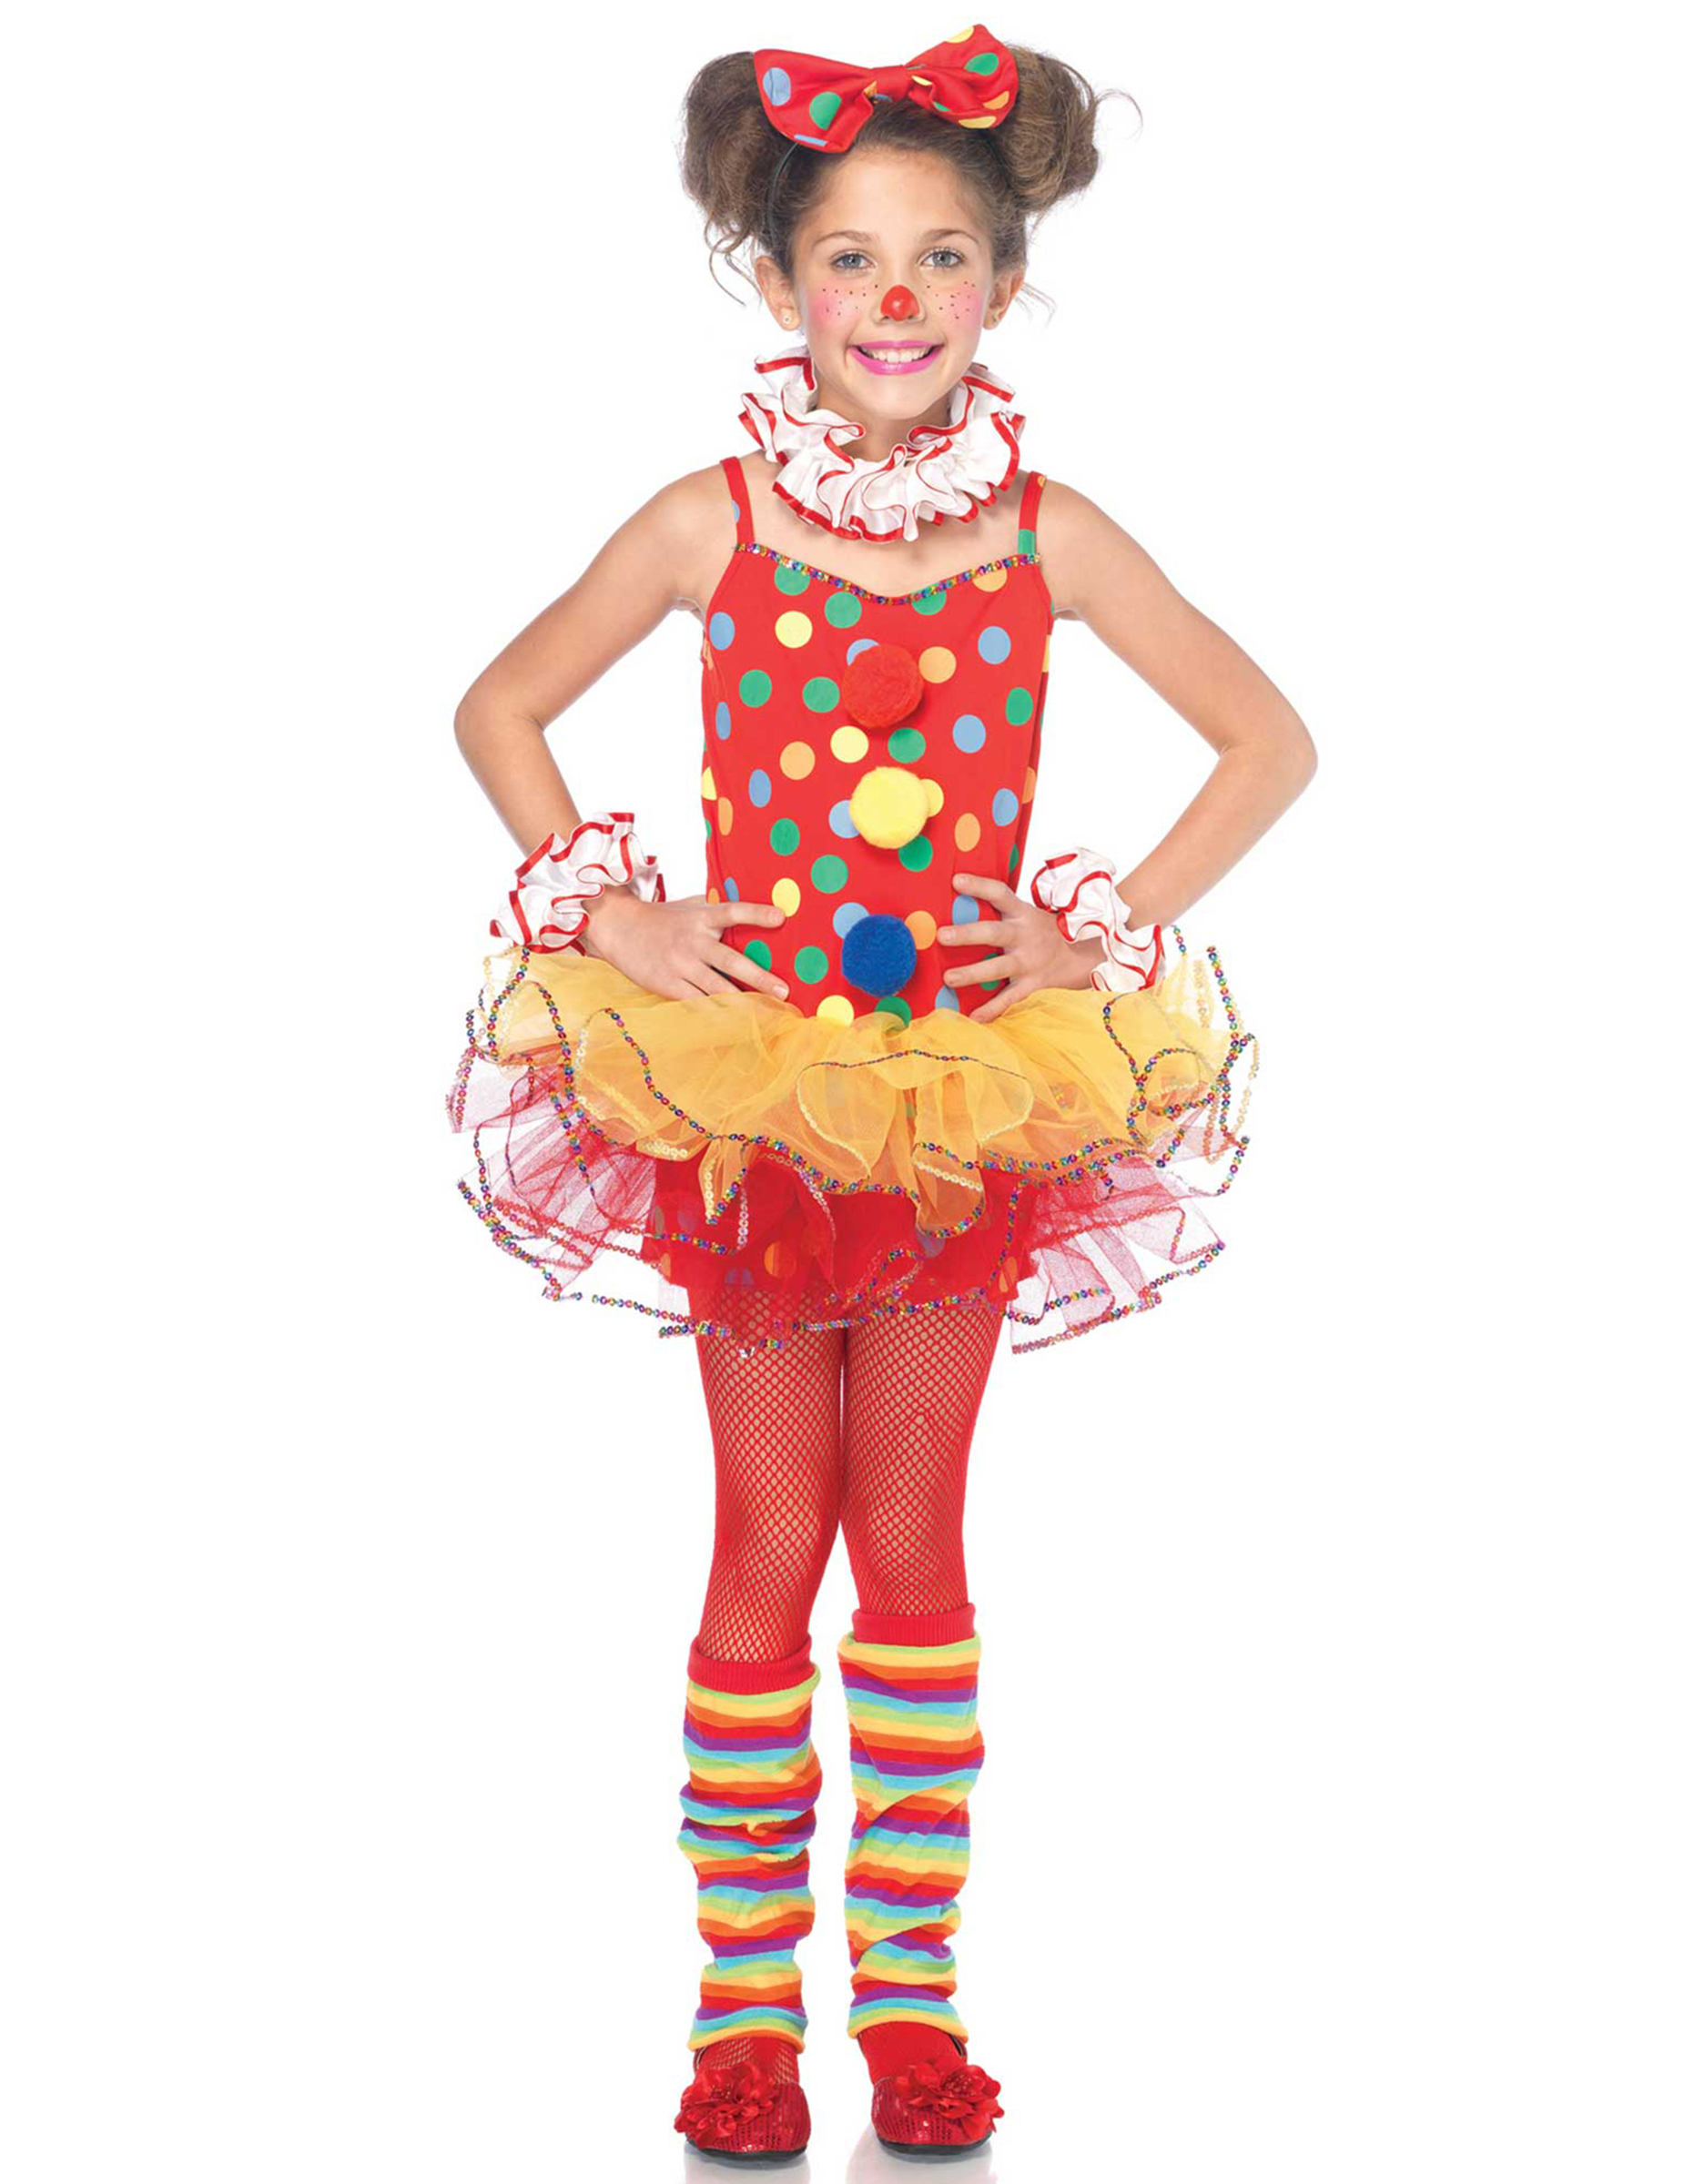 Zirkus Clown Kinderkostum Rot Bunt Gunstige Faschings Kostume Bei